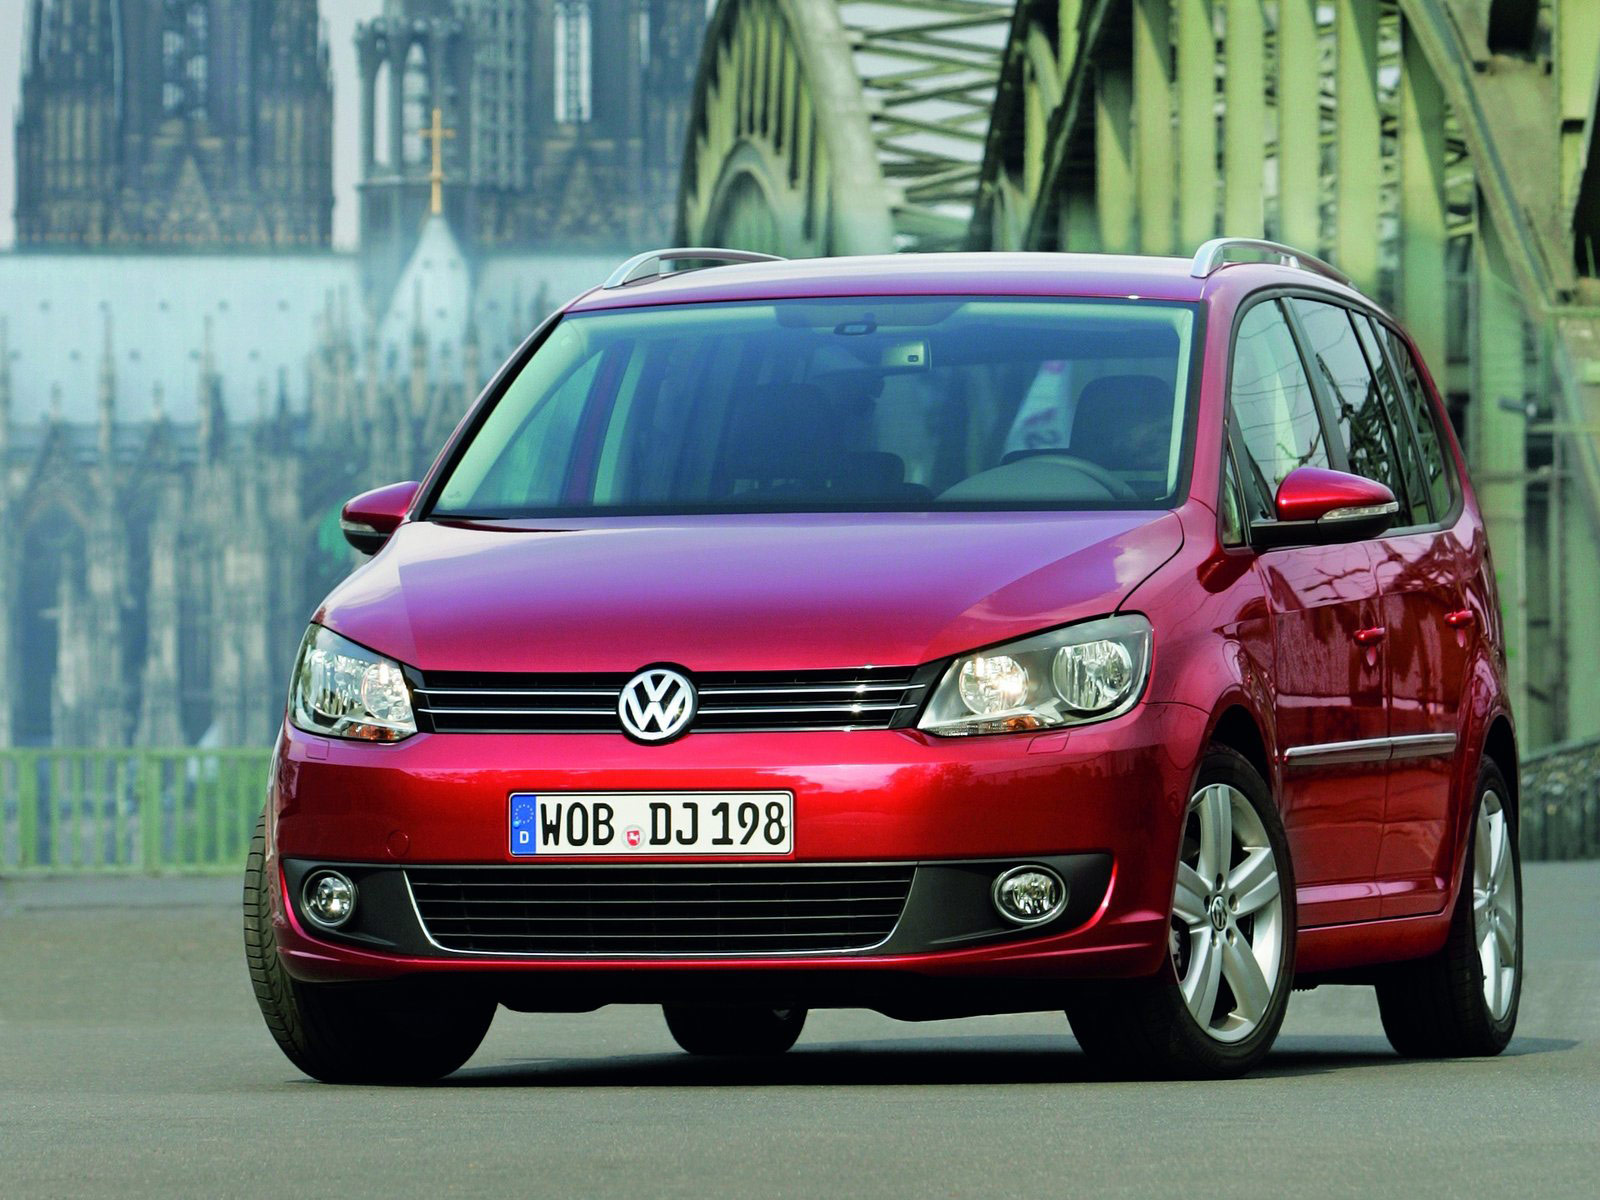 2011 vw touran volkswagen wallpapers. Black Bedroom Furniture Sets. Home Design Ideas